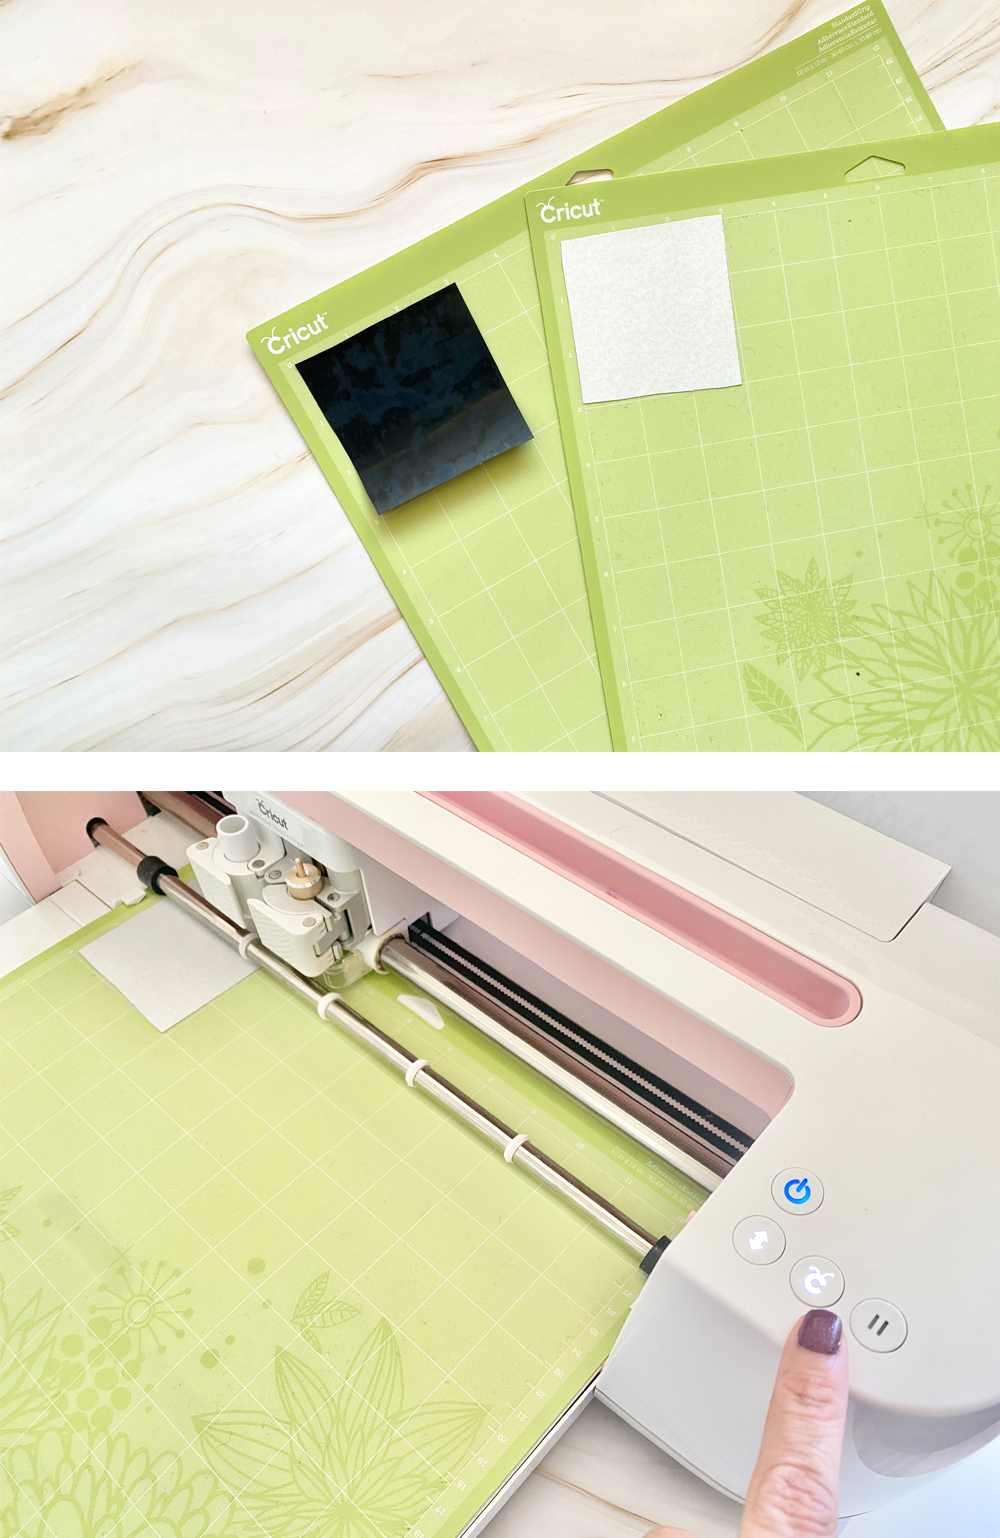 Add some personality to your tailor's clapper with this step by step photo tutorial! Learn everything you need to know to make a personalized tailor's clapper using a Cricut. suzyquilts.com #quilting #sewingdiy